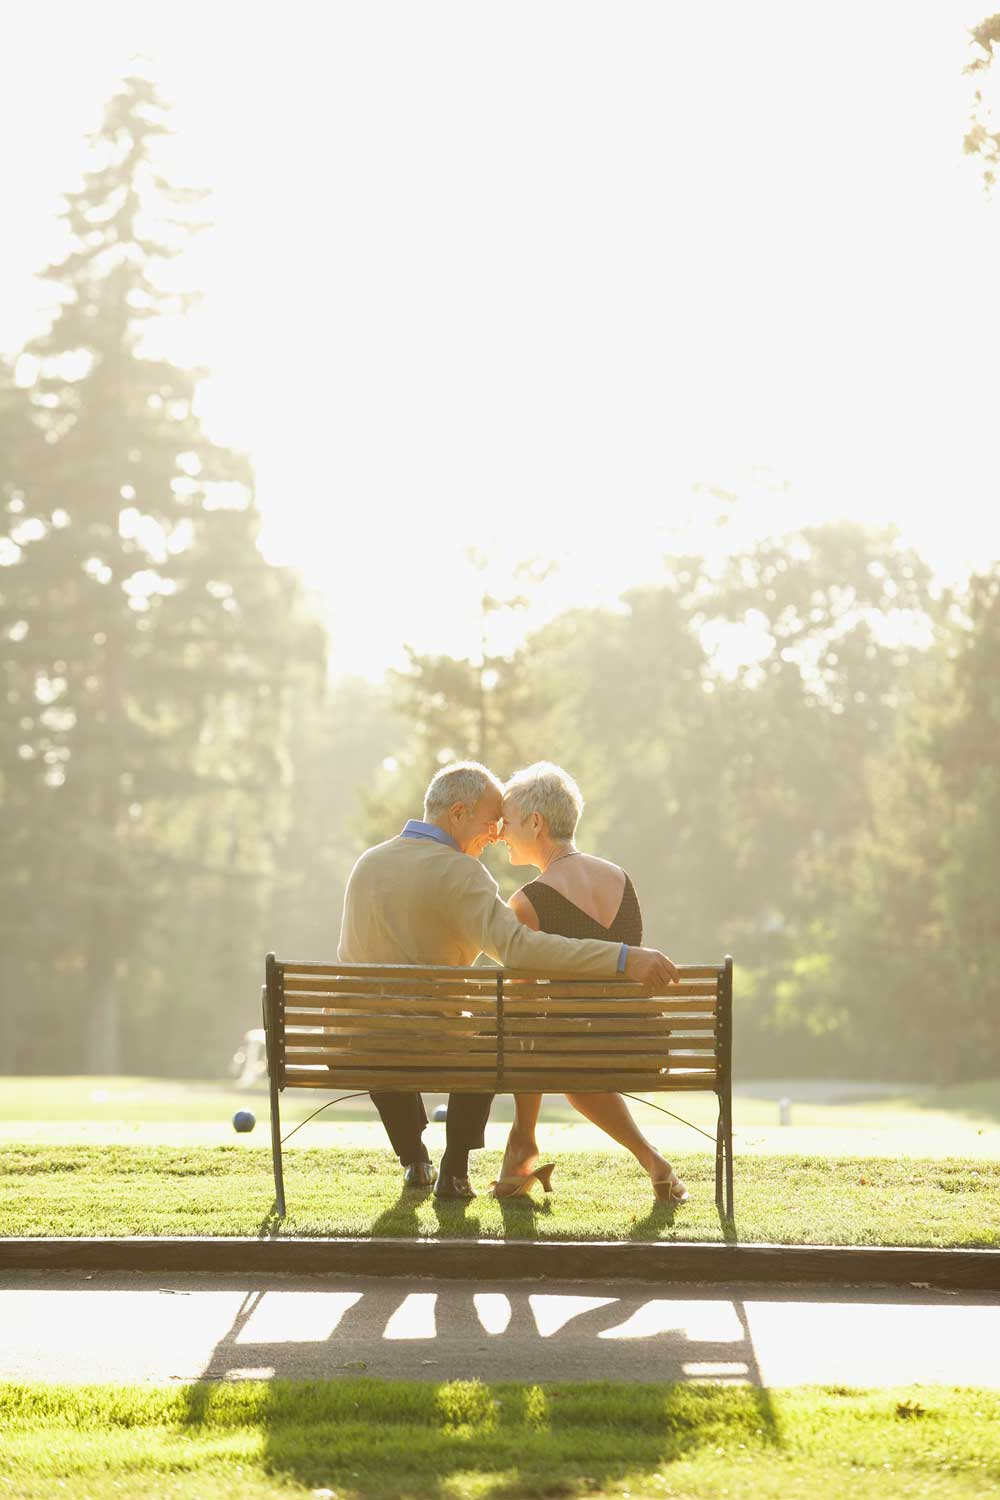 Secrets of a successful and long relationship from married couples